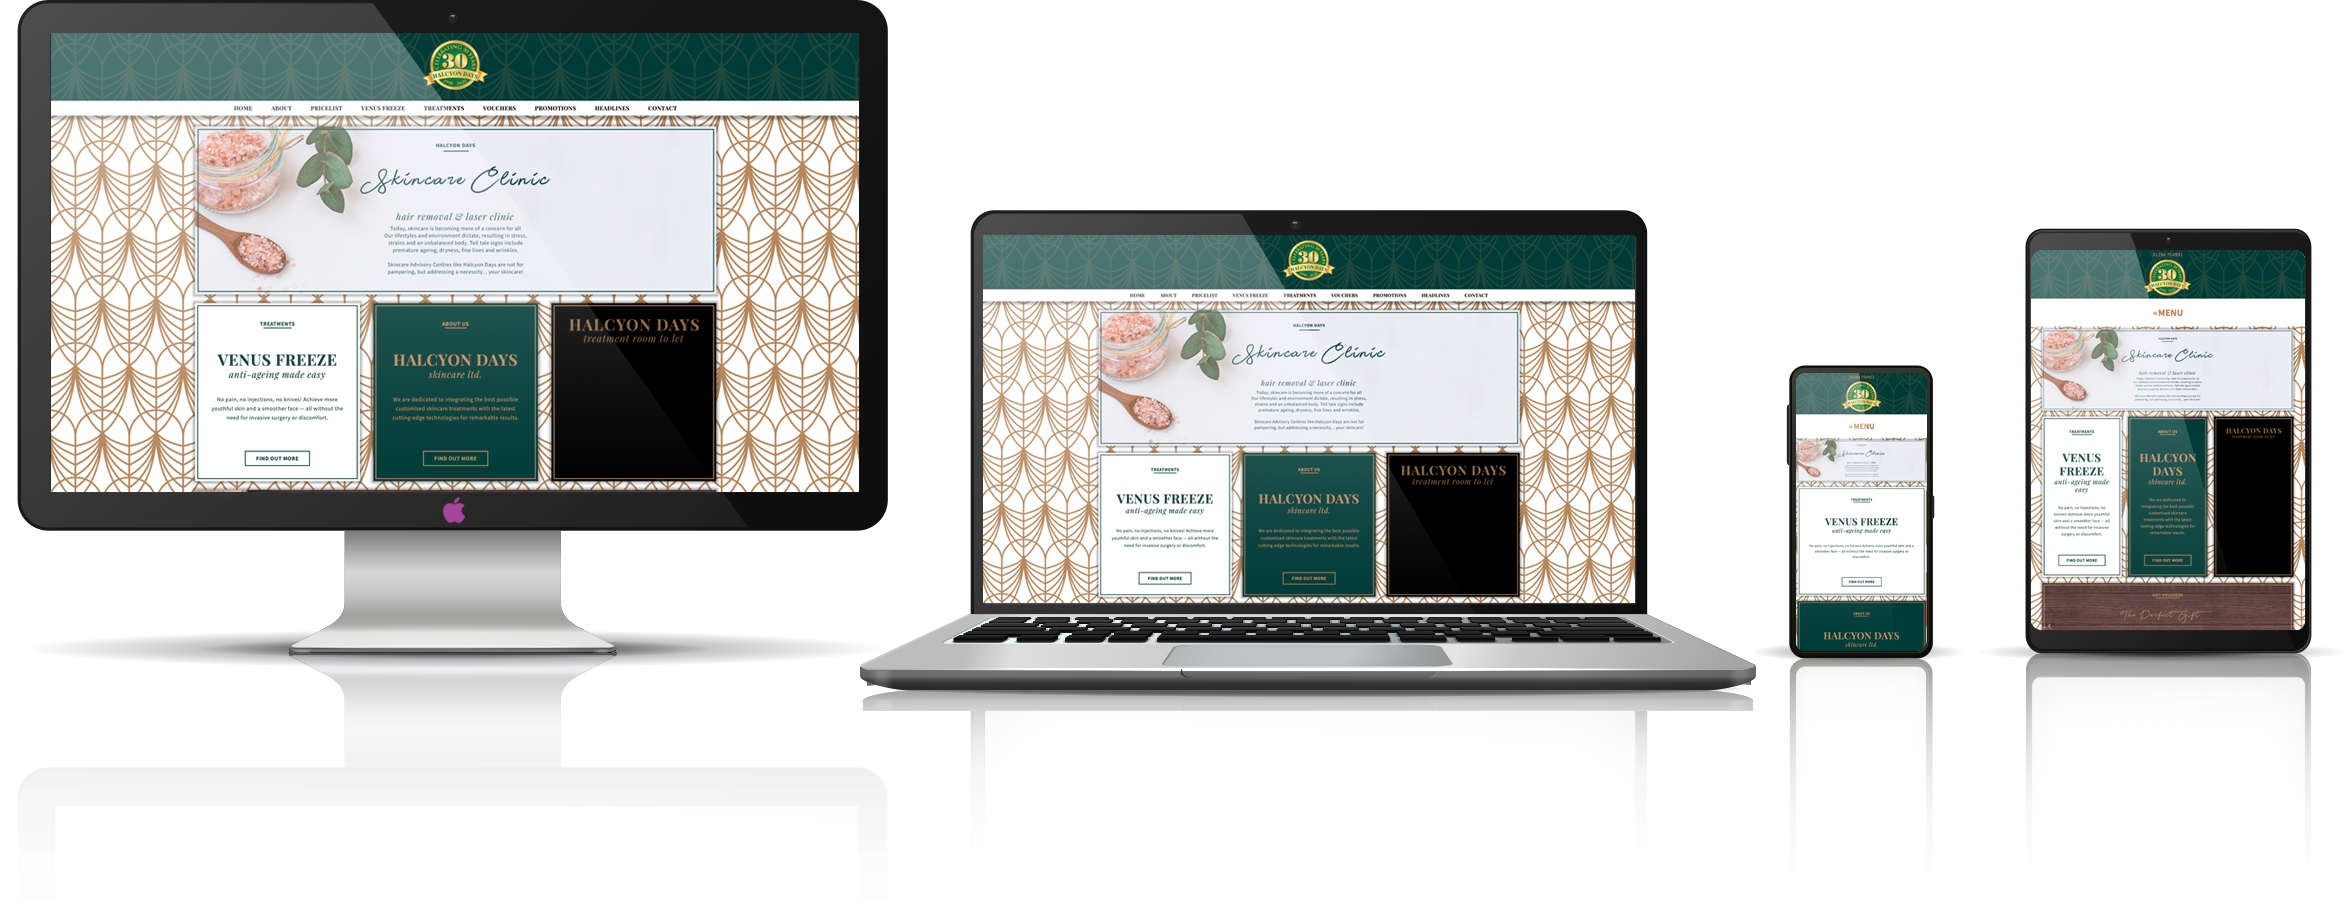 The Halcyon Days Skincare fully responsive mock-up images showing desktop, laptop, tablet, and mobile phone devices.